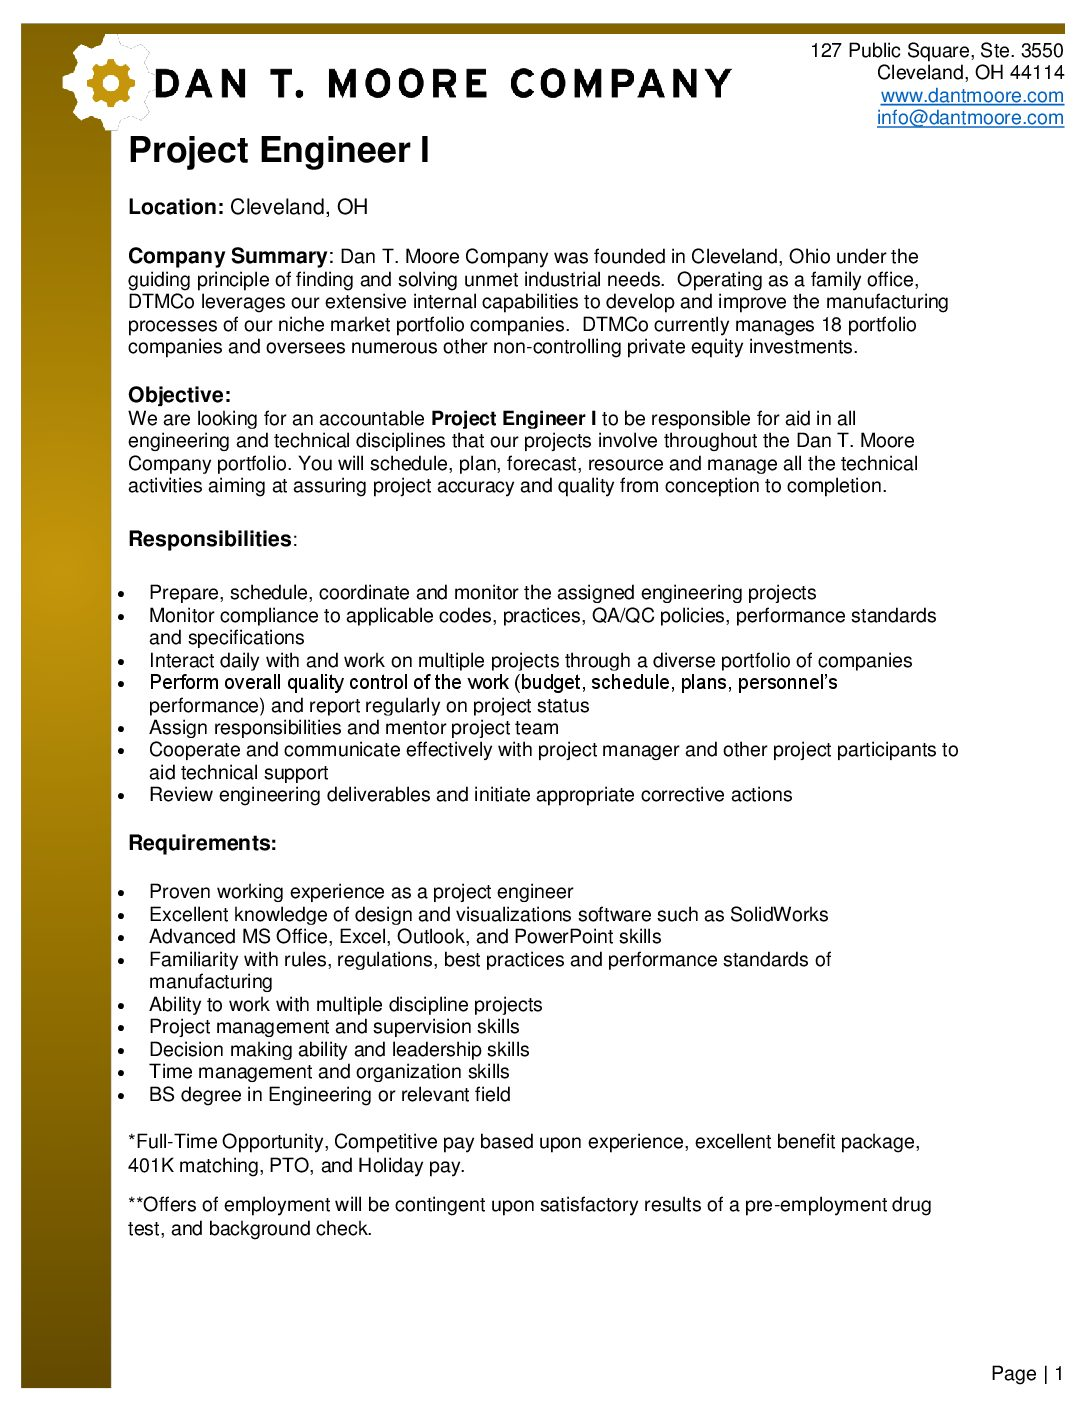 Project-Engineer-I